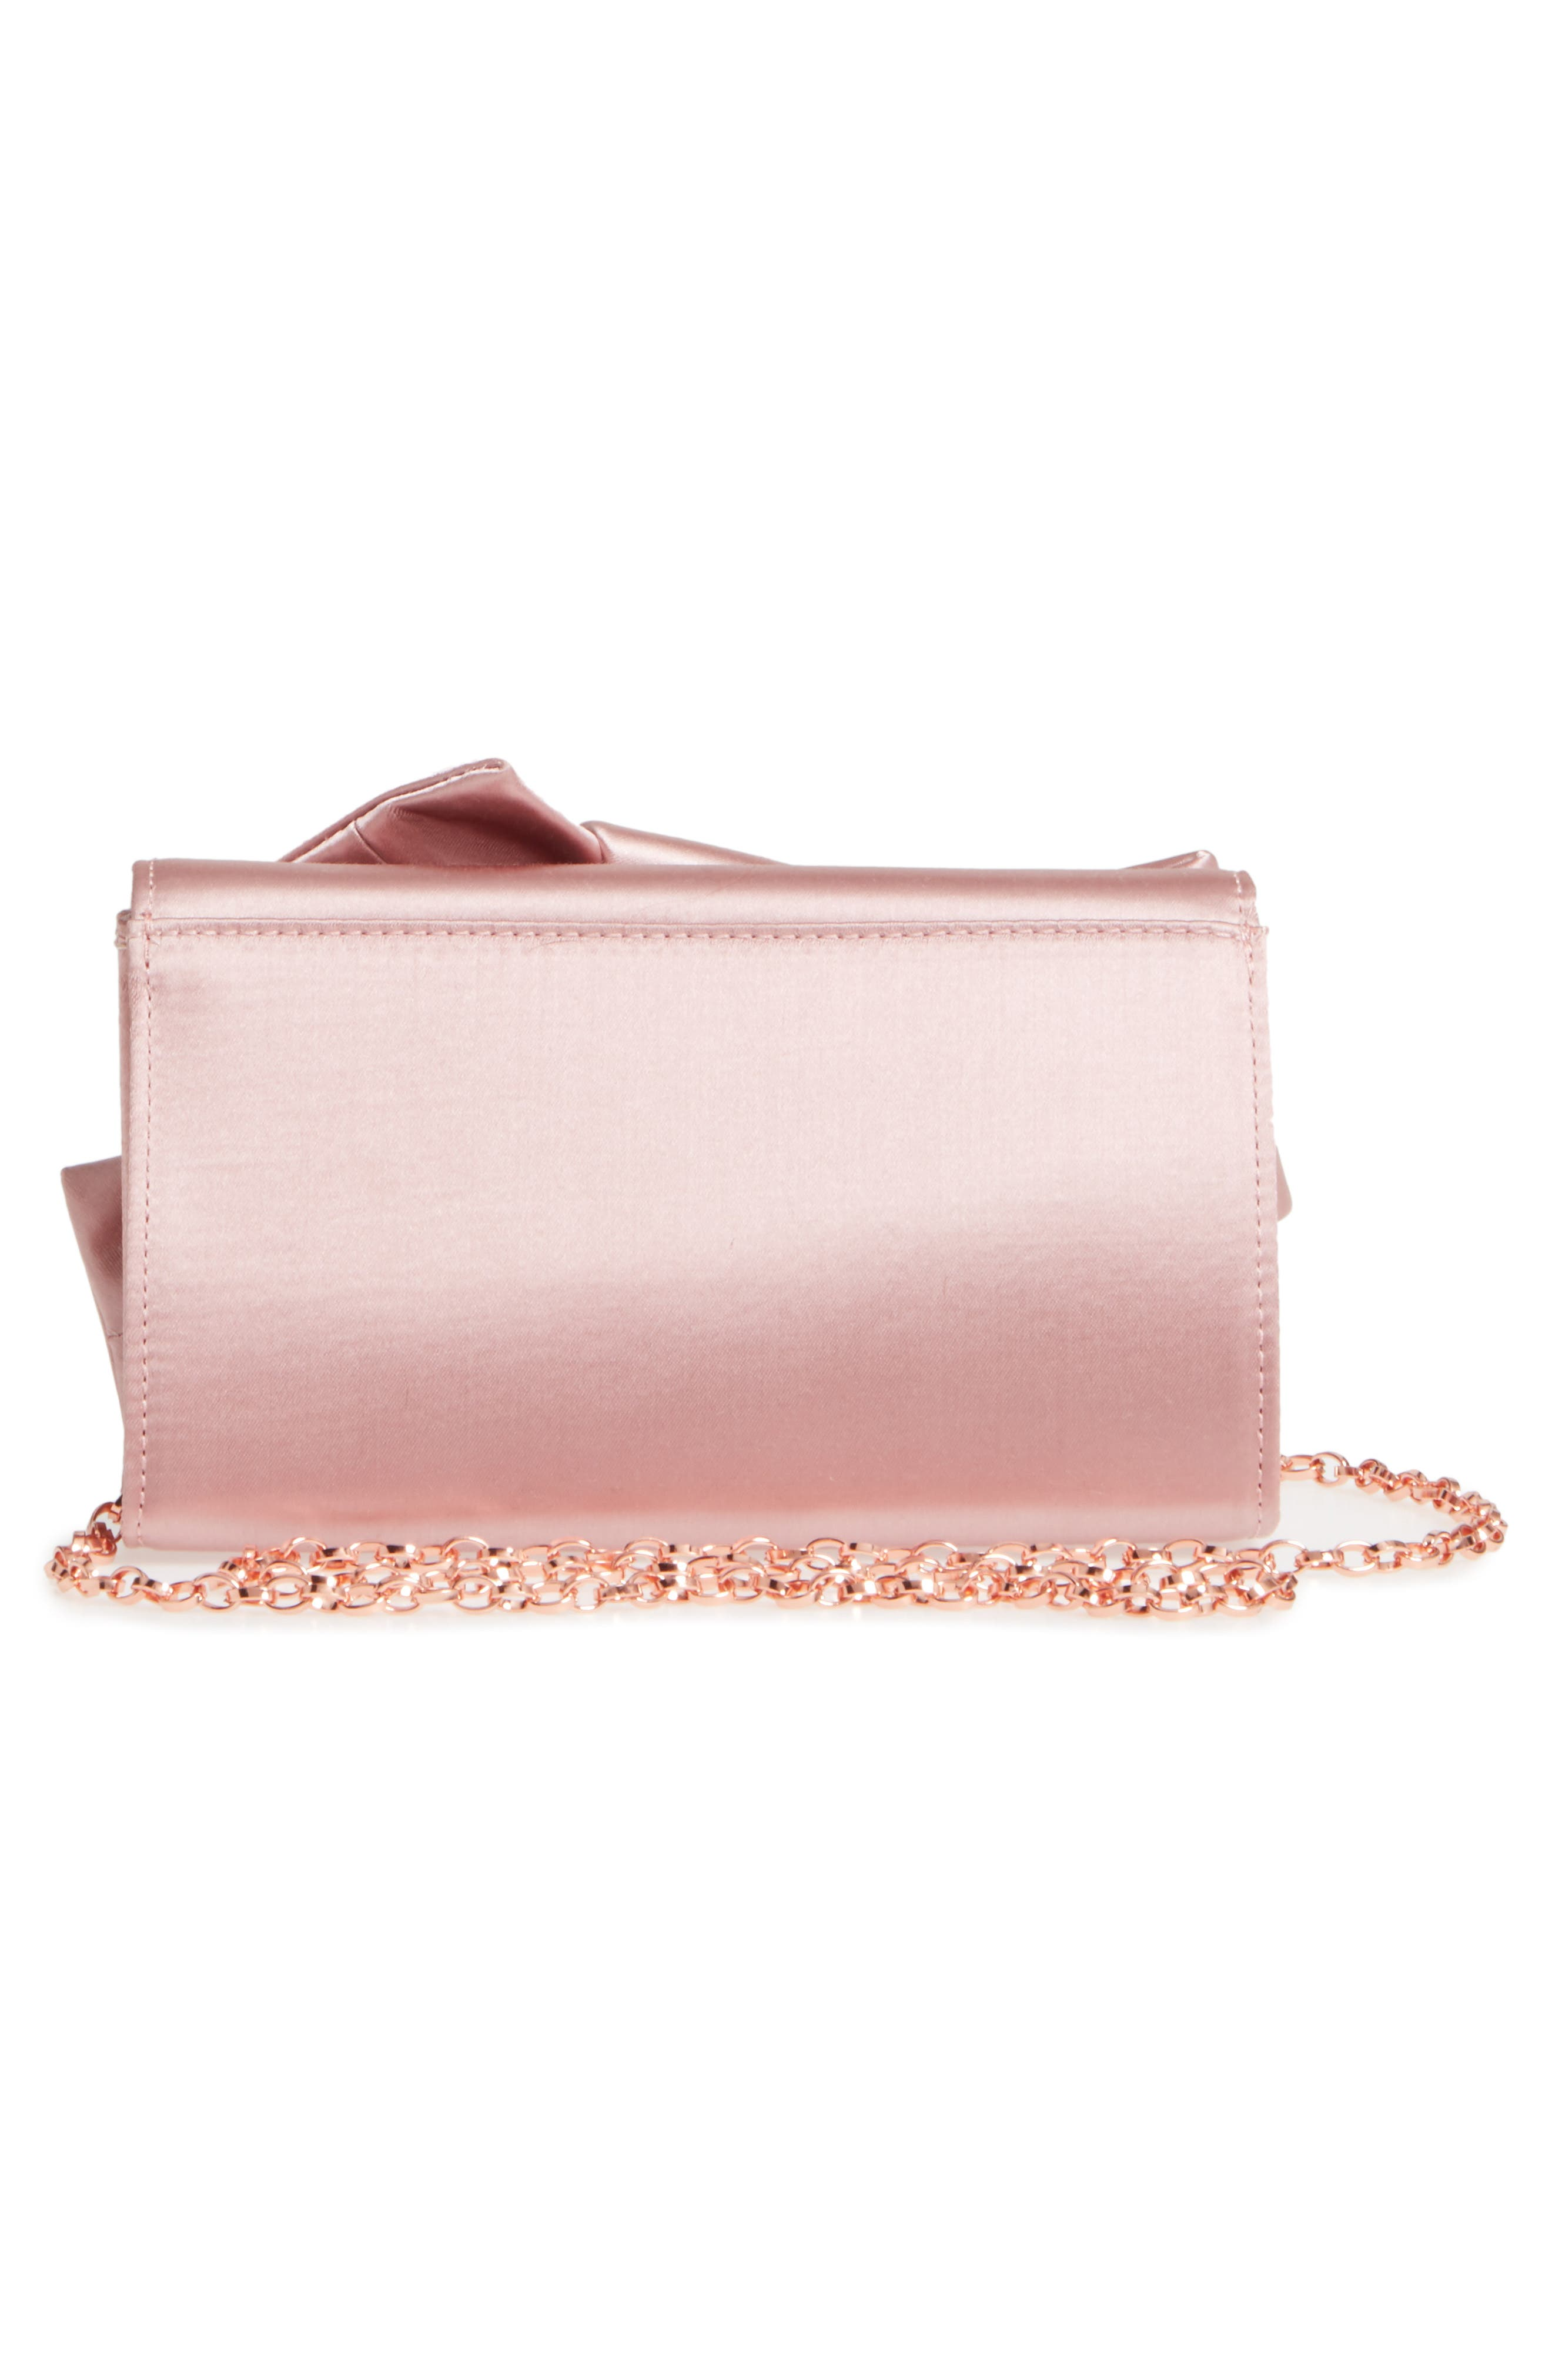 TED BAKER LONDON, Fefee Satin Knotted Bow Clutch, Alternate thumbnail 4, color, LIGHT PINK